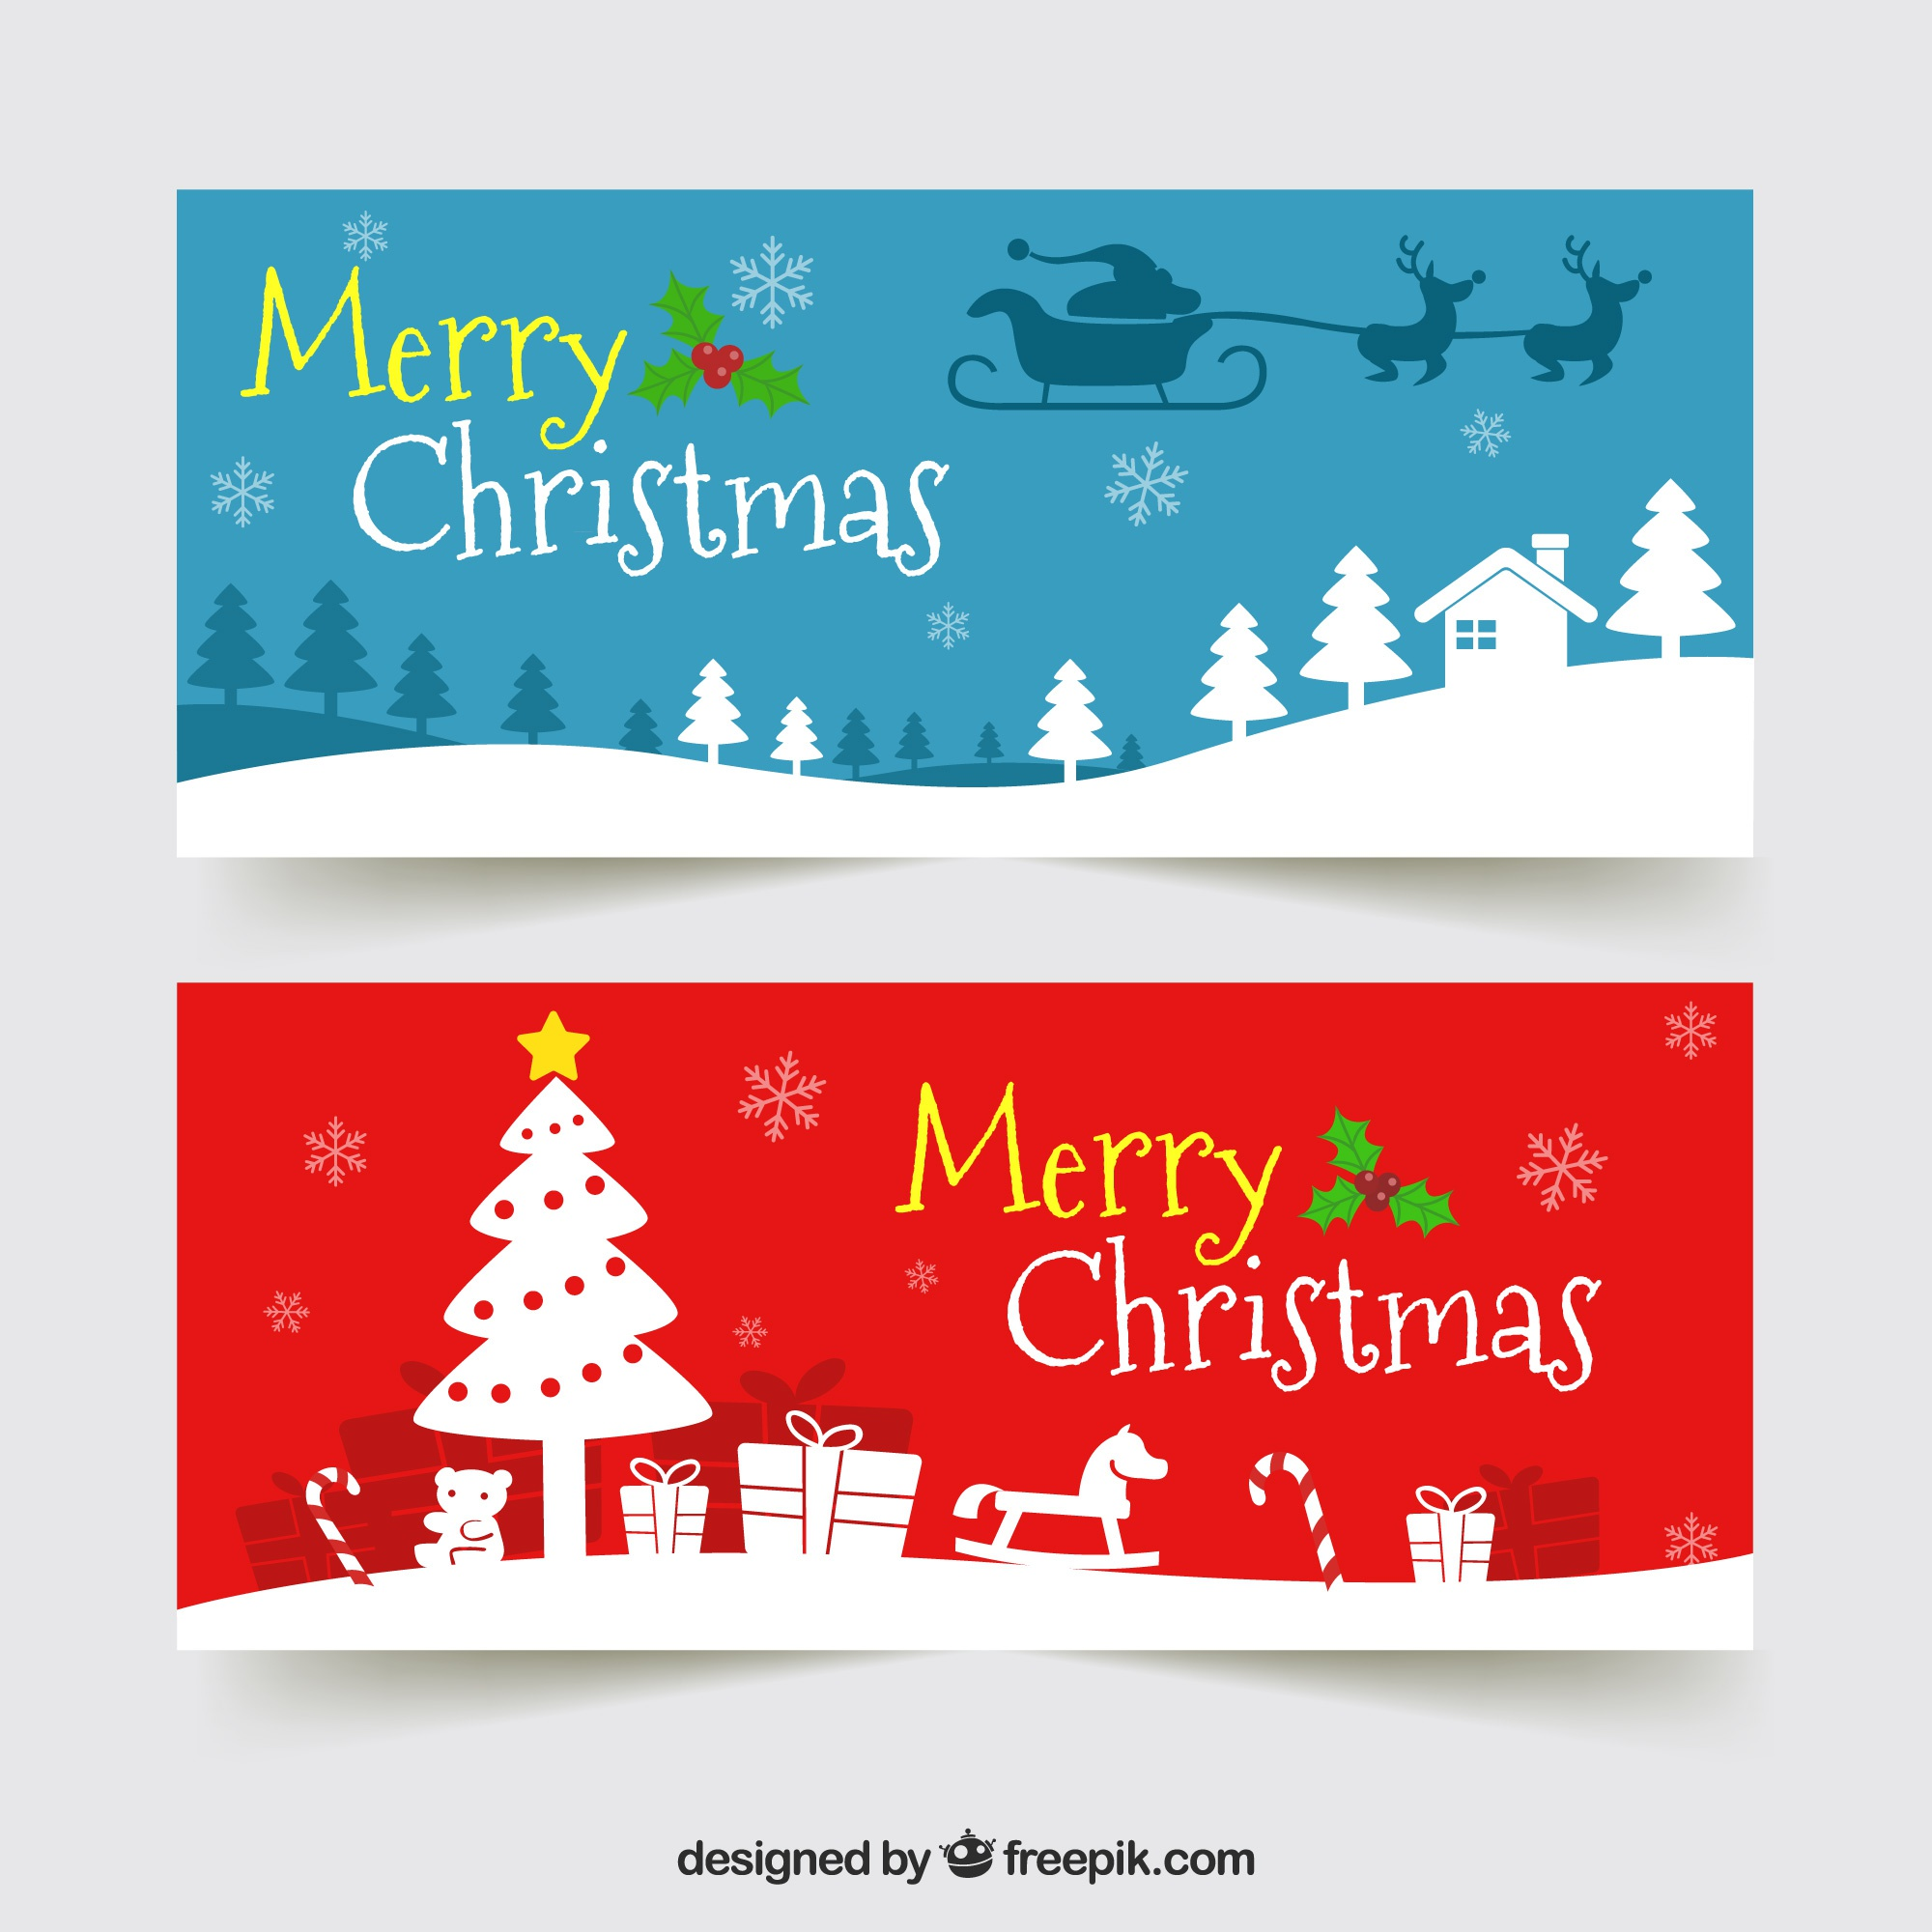 Merry christmas banners with silhouettes